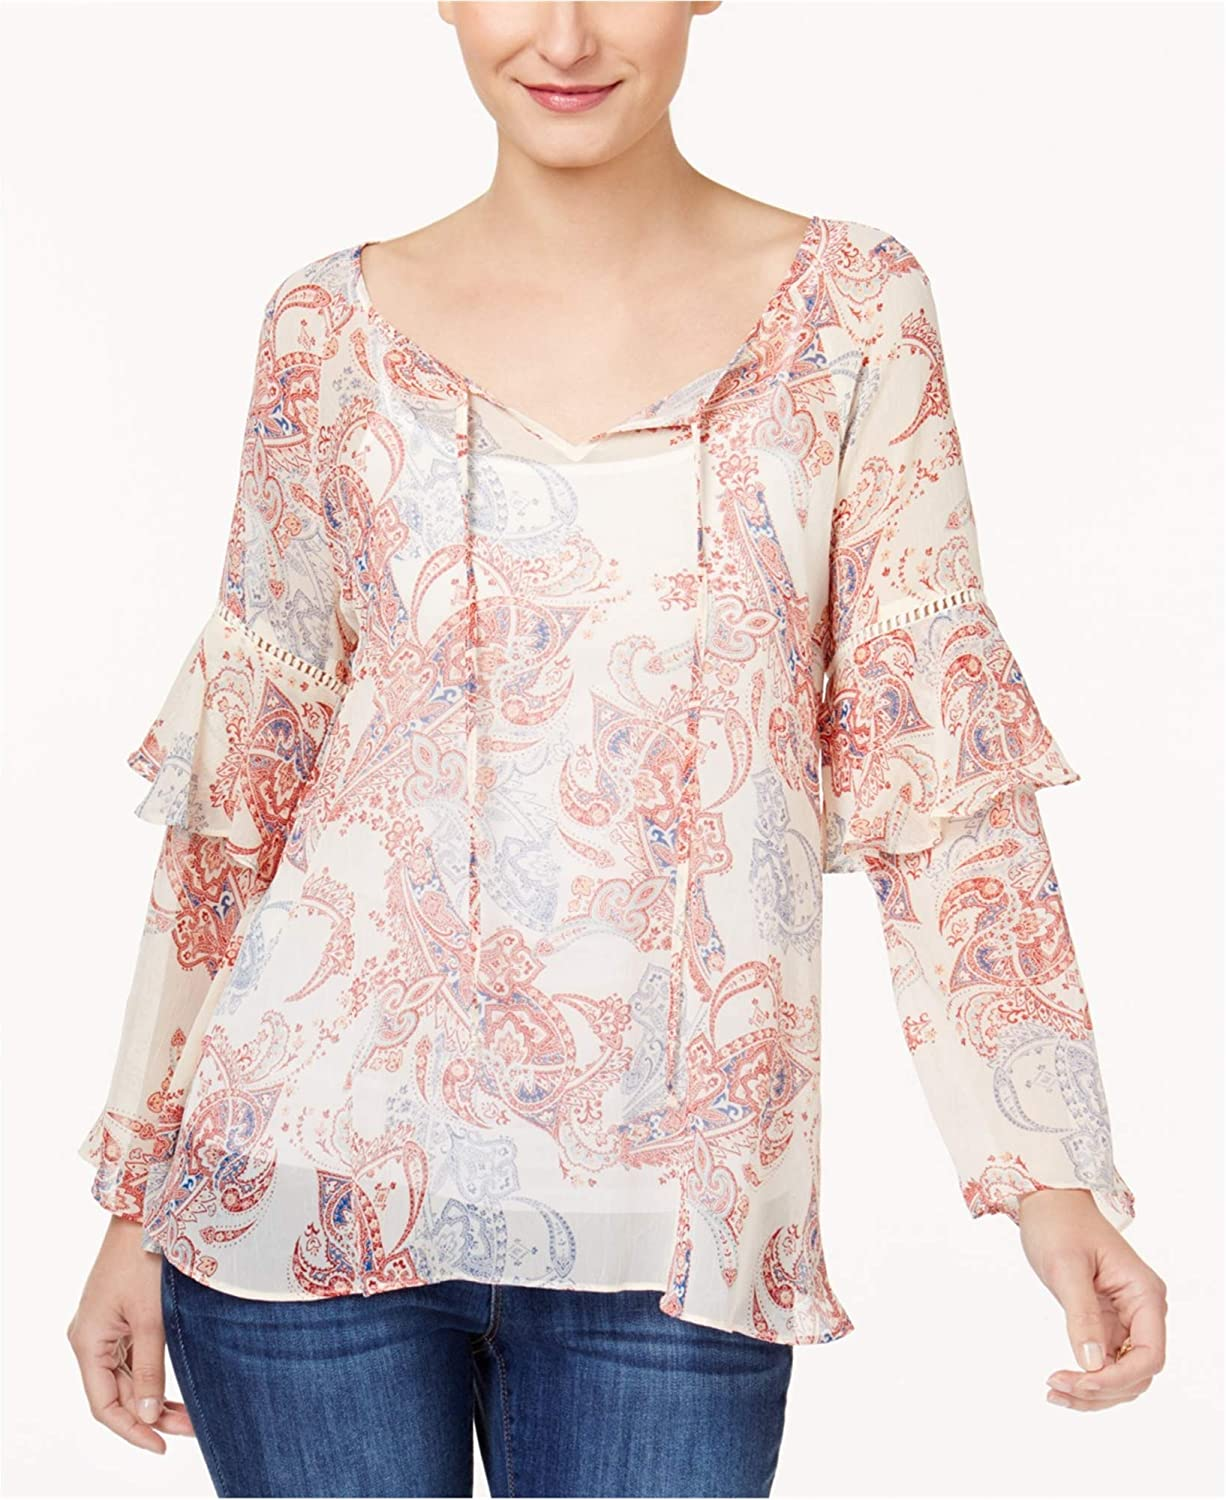 Style & Co. Womens Sheer PaisleyPrint Peasant Blouse